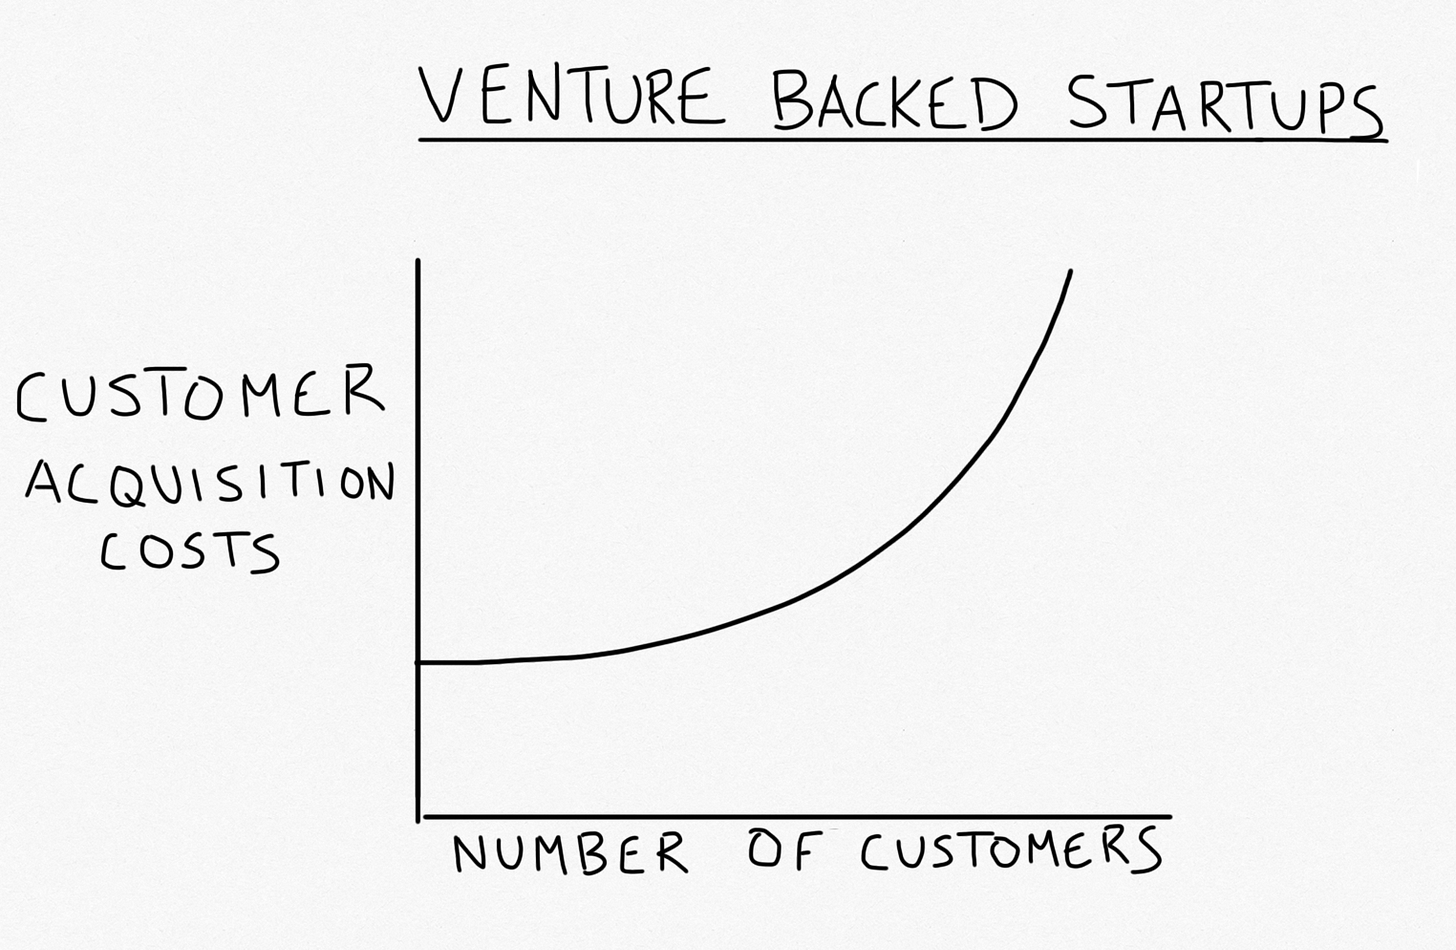 Customer acquisition costs are increasing exponentially.